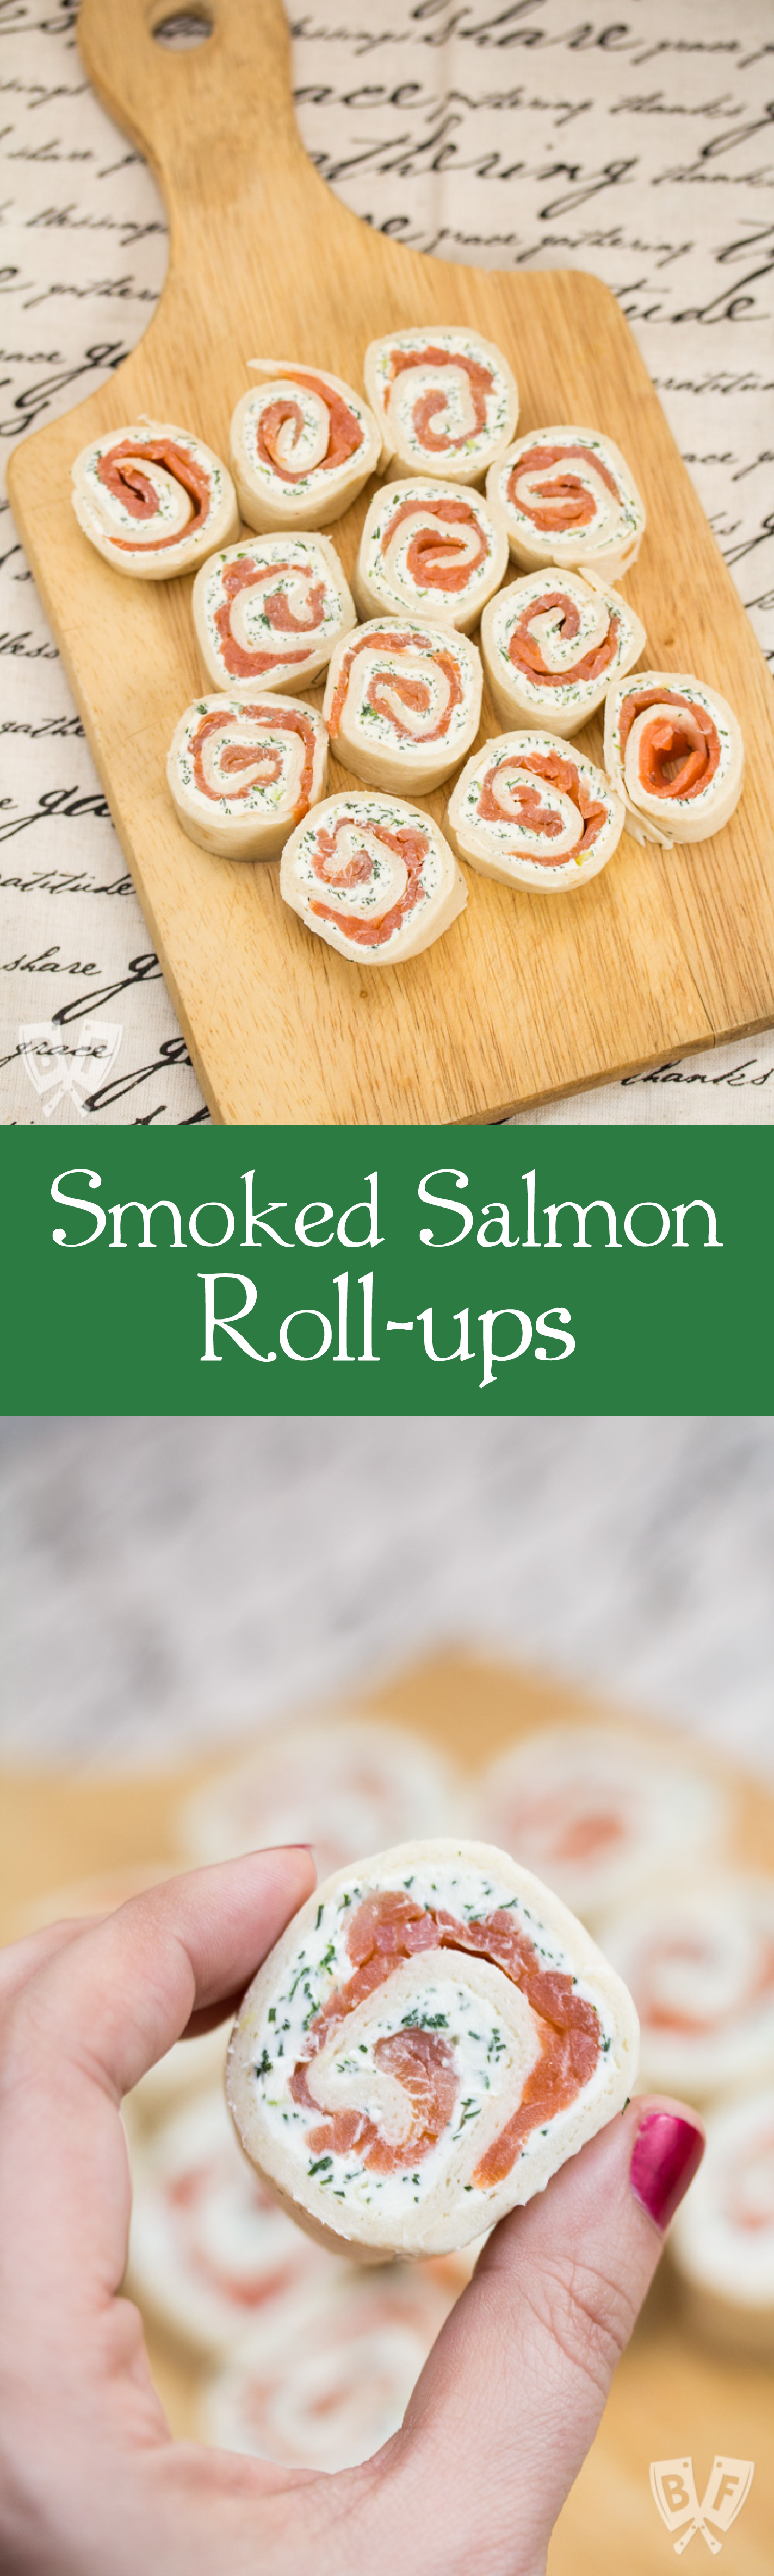 Smoked Salmon Roll-ups: This 5 ingredient party food recipe is simple and delicious - perfect for game day!